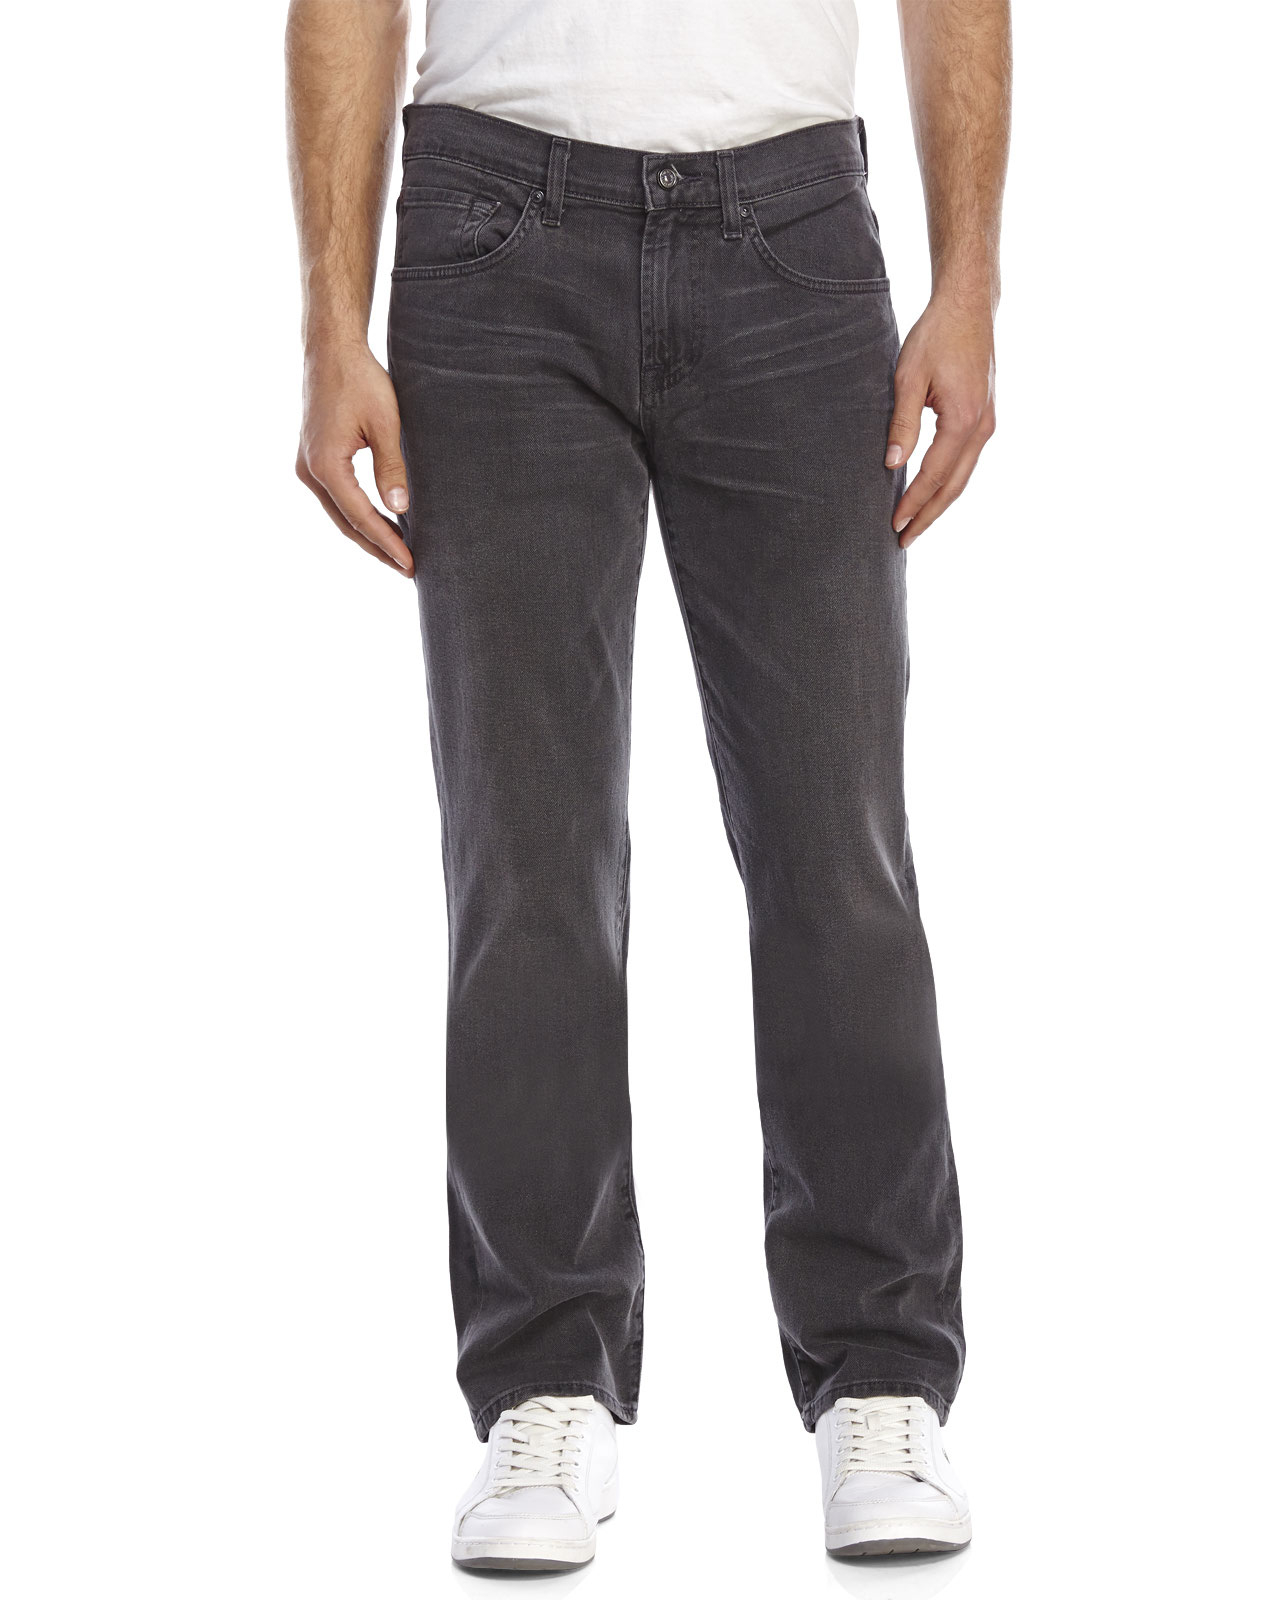 lyst  7 for all mankind dark grey carsen jeans in gray